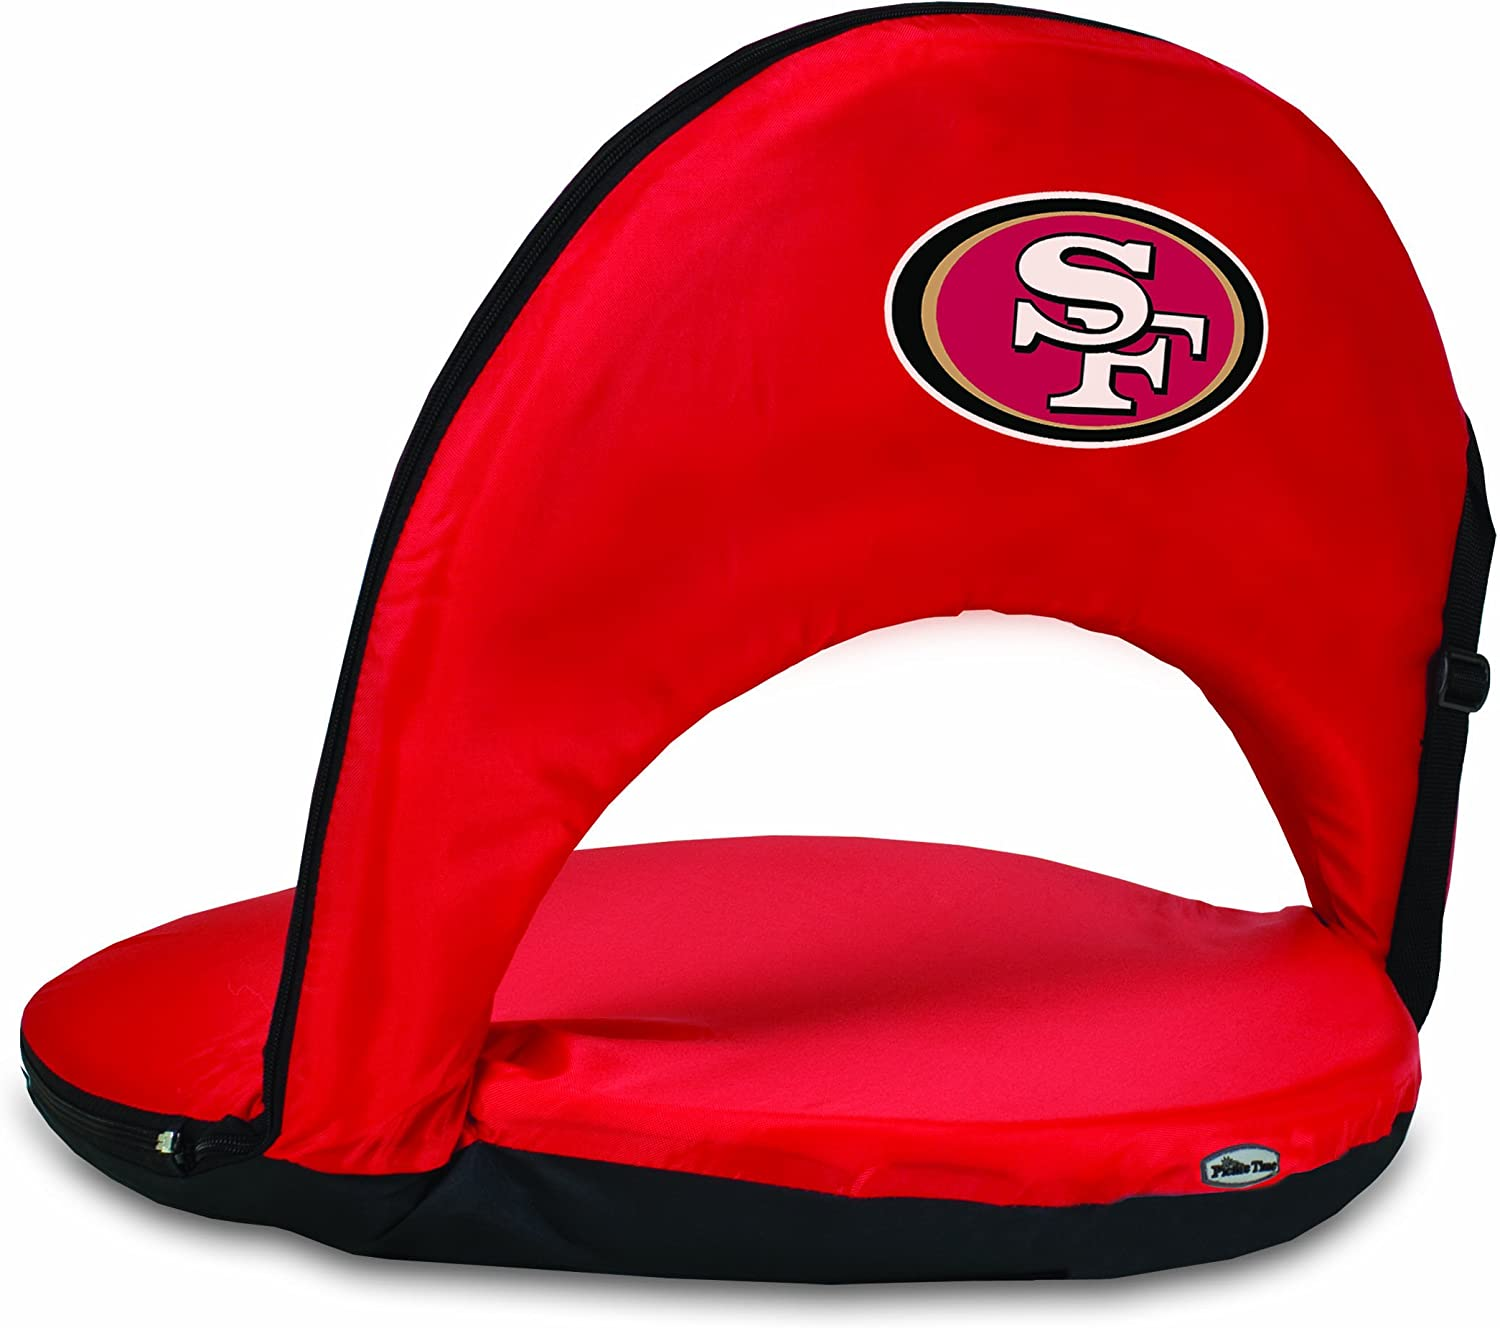 Red NFL San Francisco 49ers Oniva Portable Reclining Seat